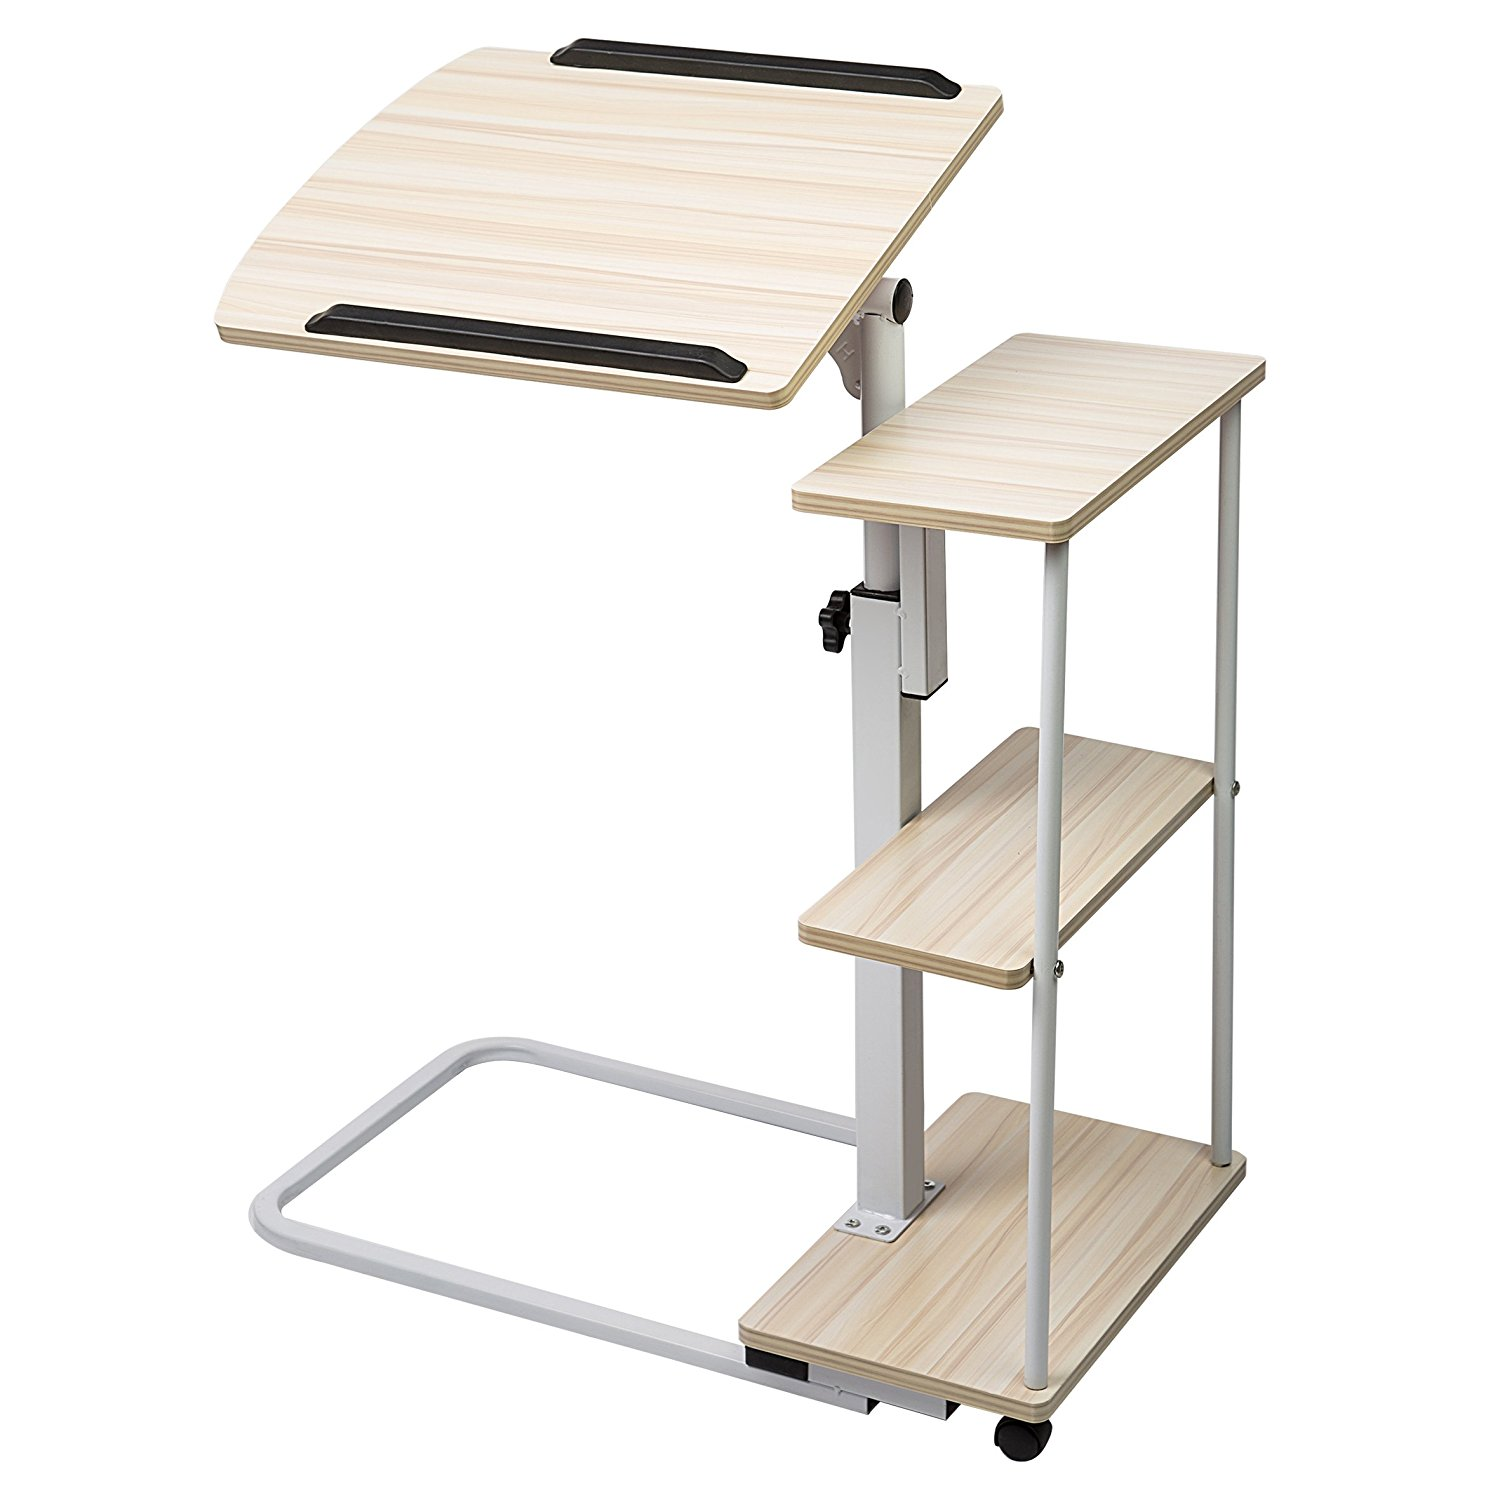 Adjustable Overbed Table with Wheels, Multi-Function Lapt...